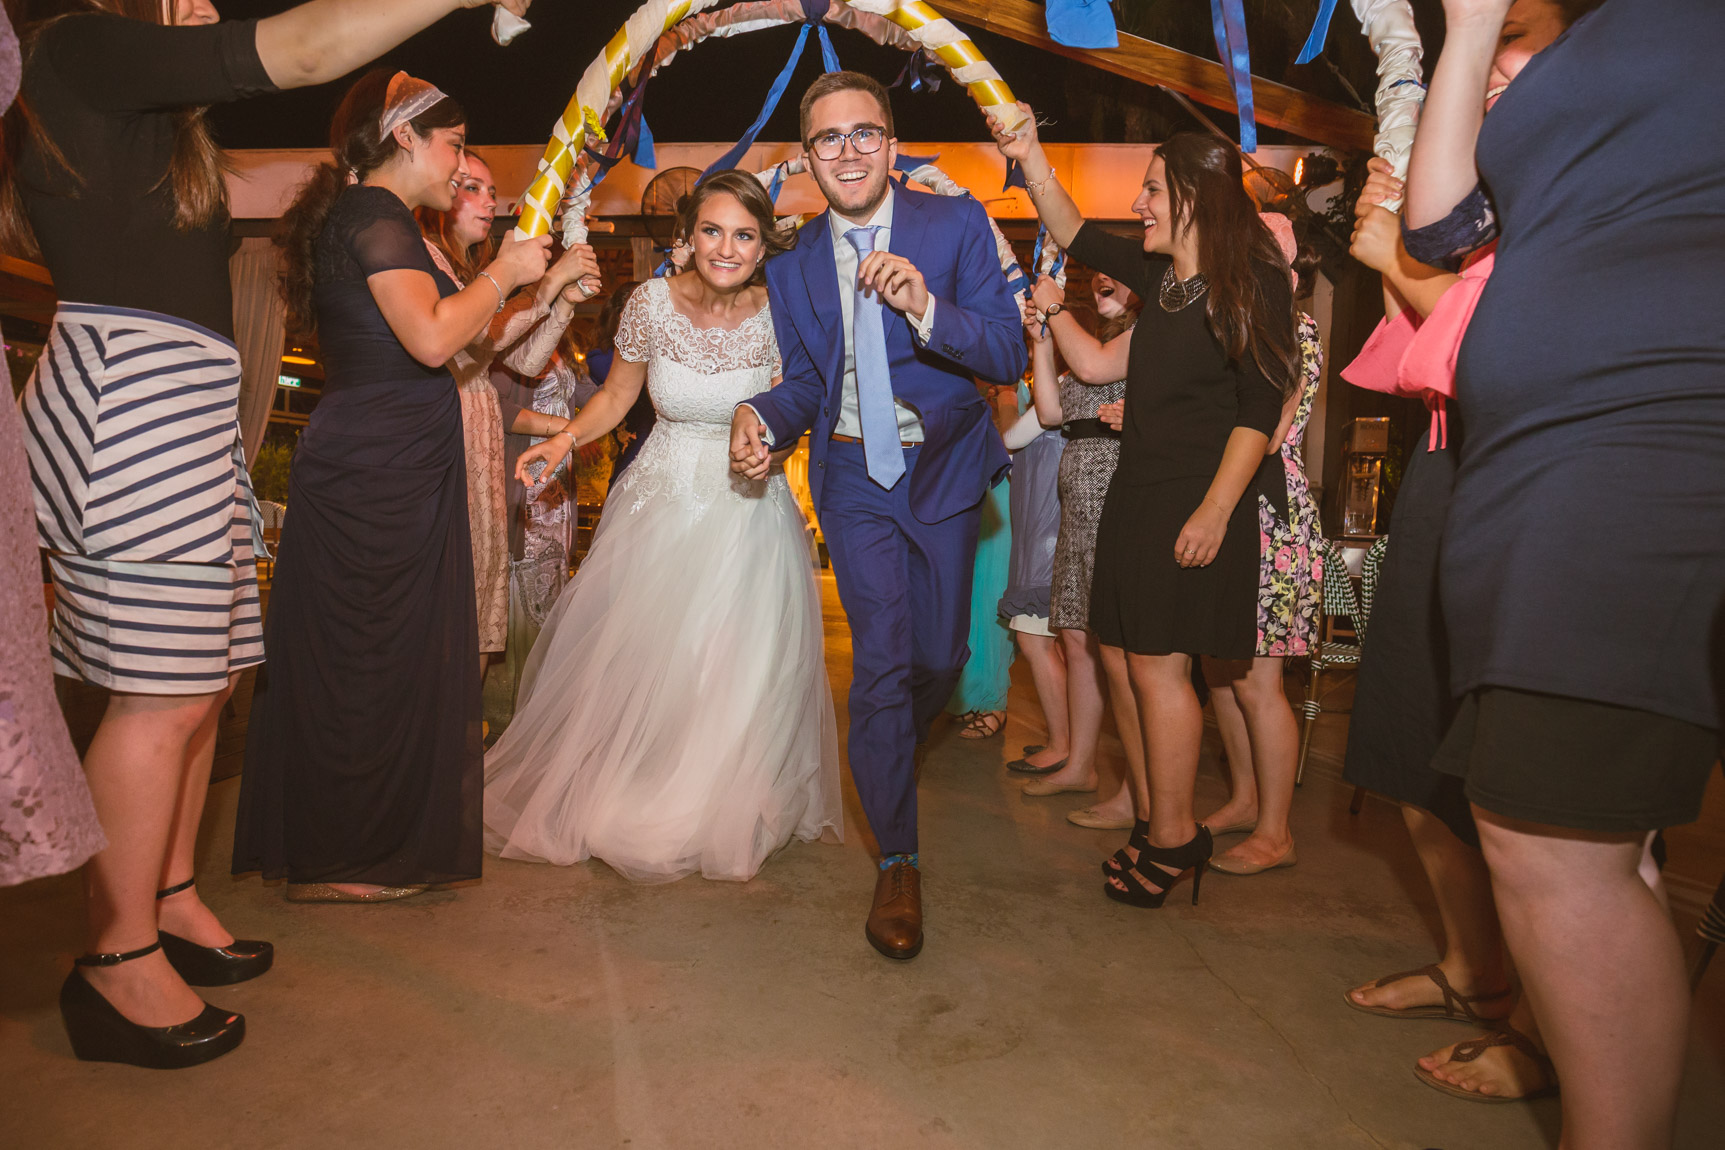 Leah & Judah's Israeli Wedding